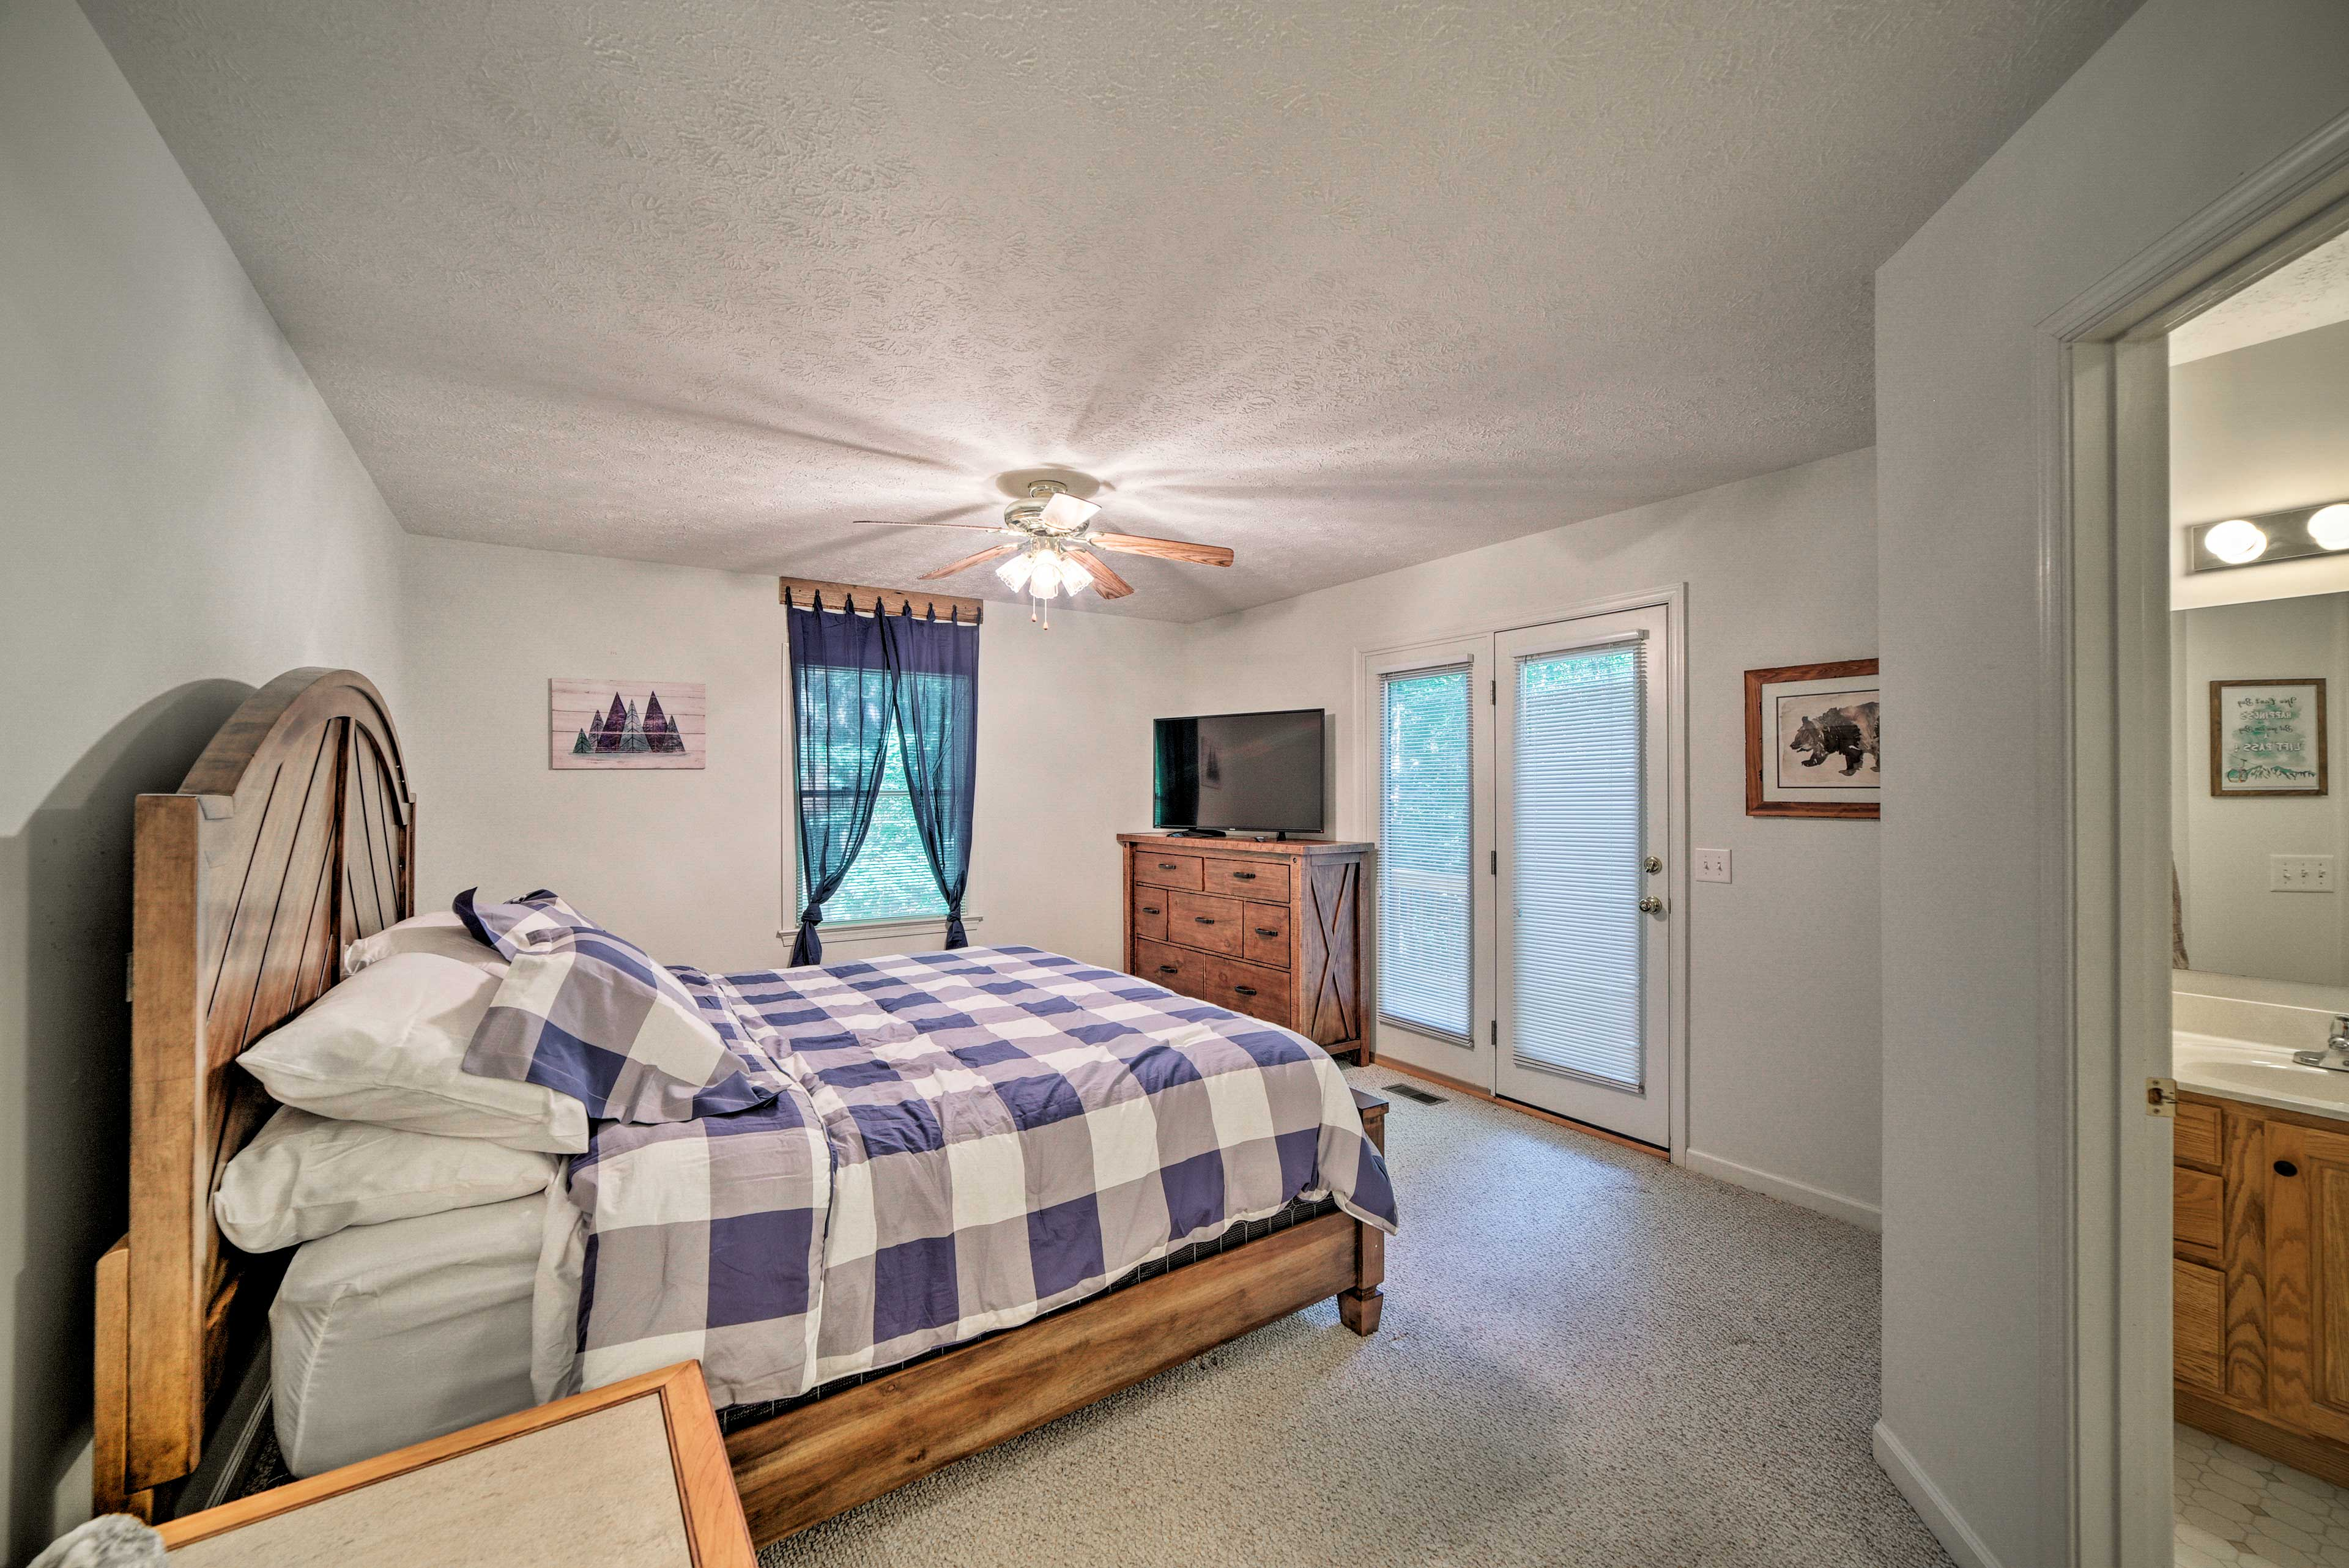 Claim the master bedroom for your own!